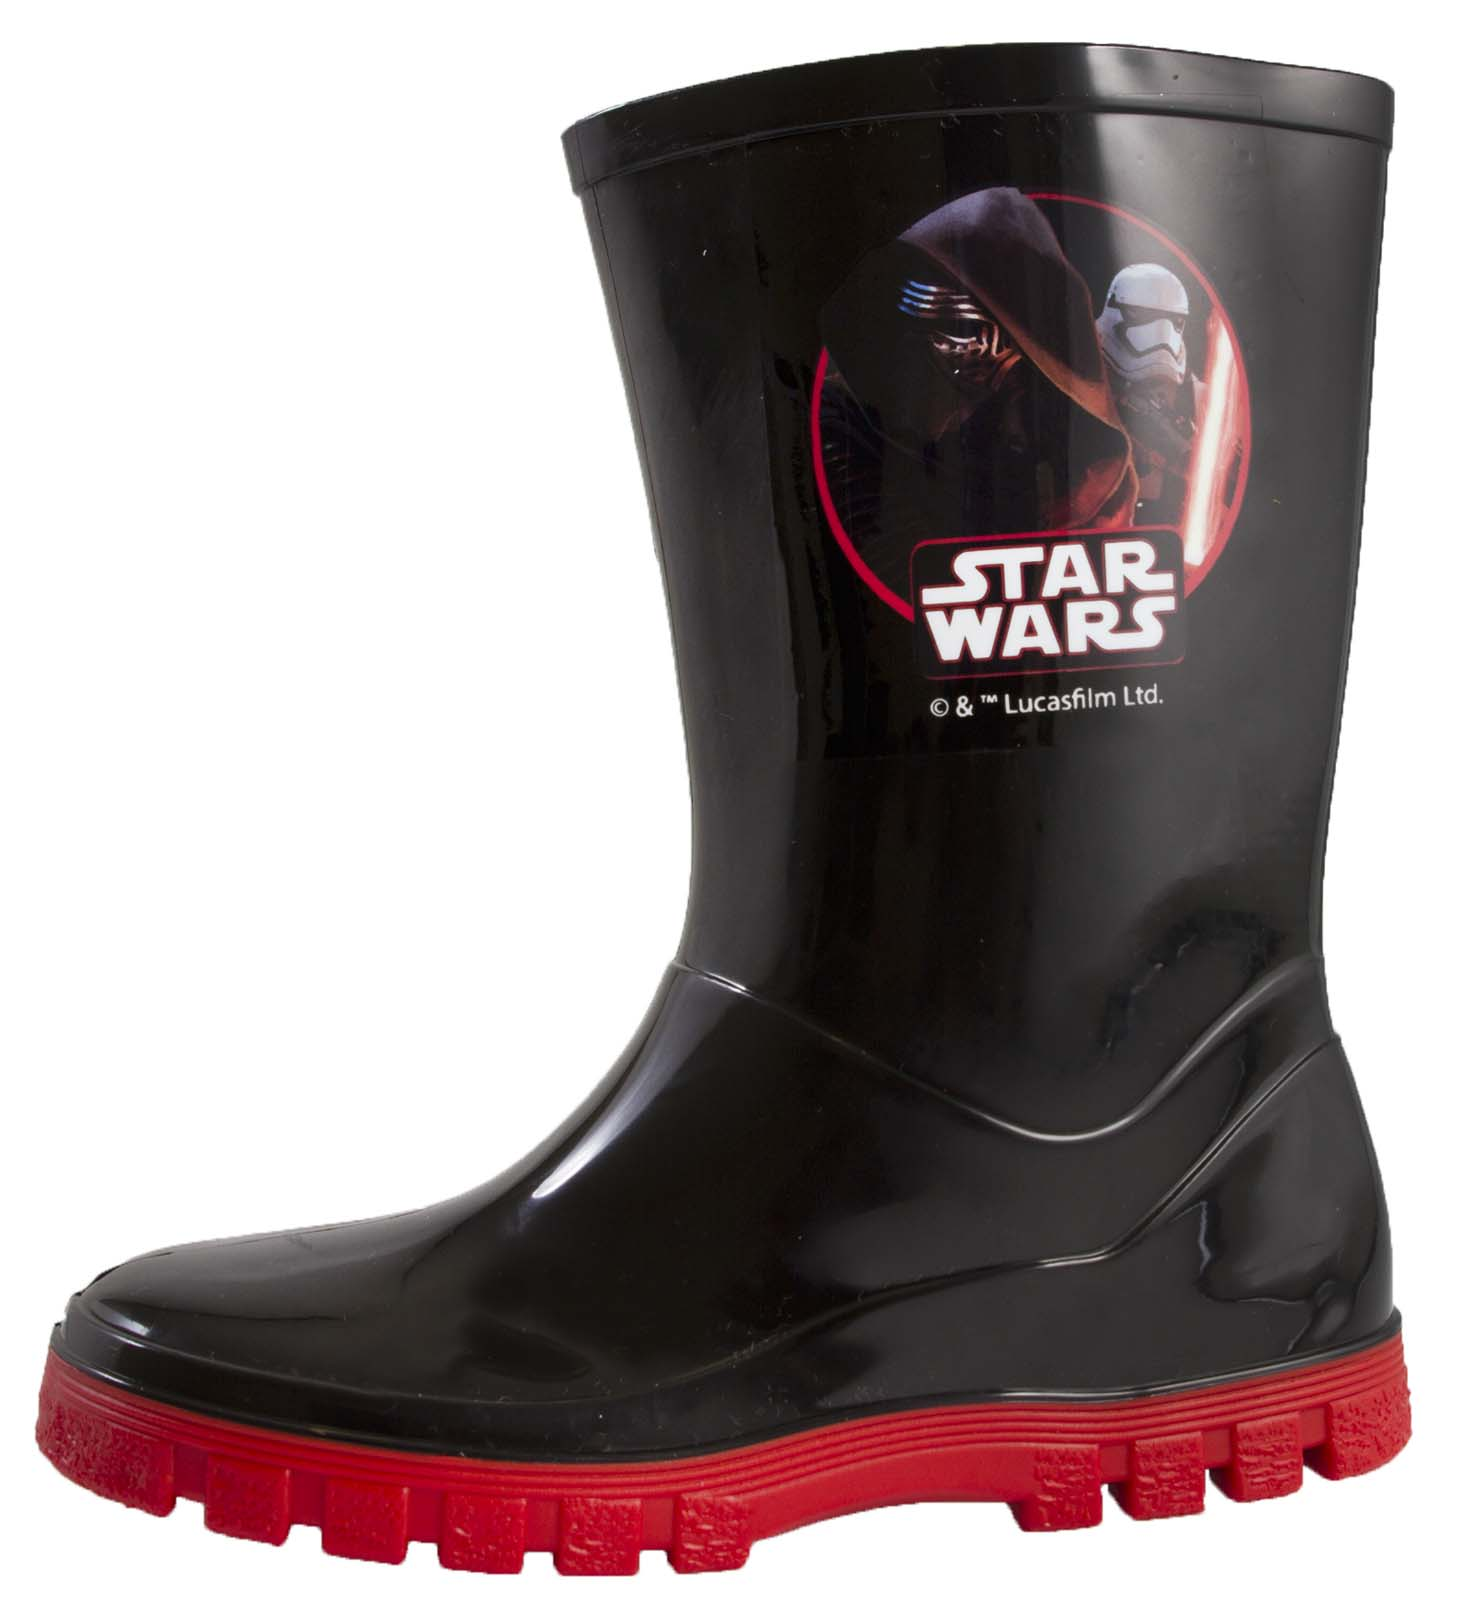 Star Wars Darth Vader Childrens Wellies FU_7944